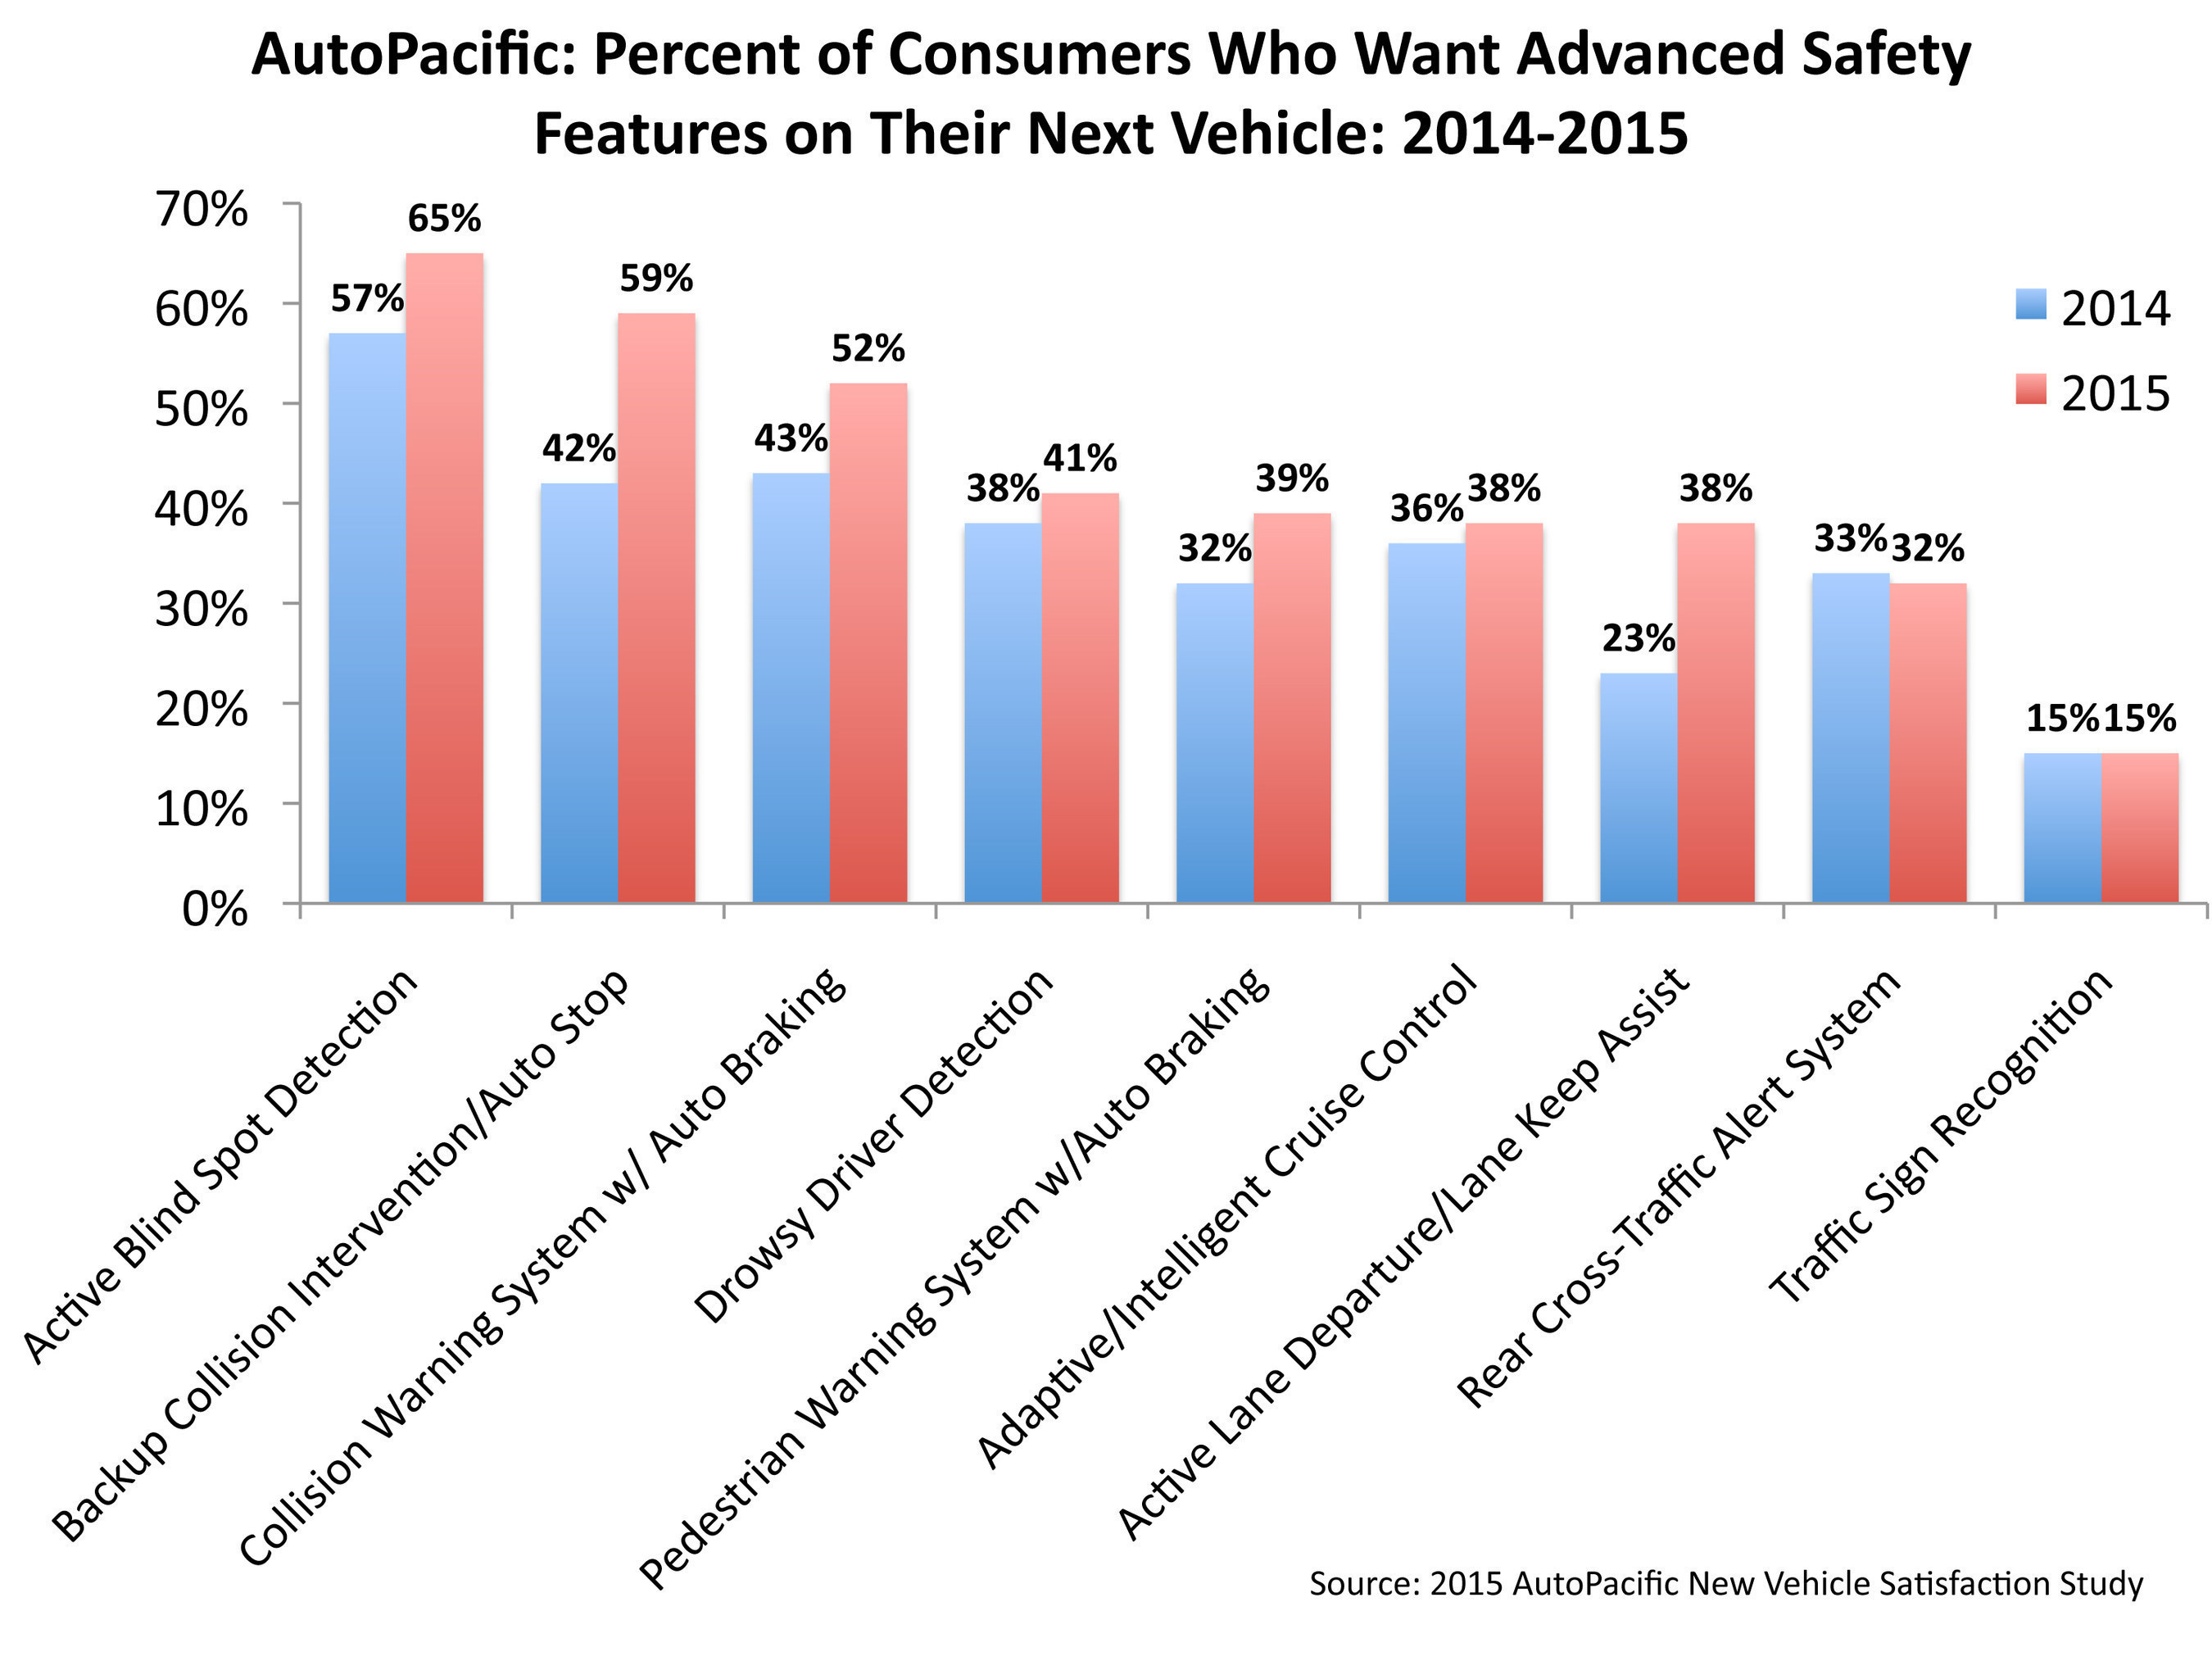 AutoPacific's 2015 New Vehicle Satisfaction Survey reveals an increase in demand for 7 out of 9 advanced ...